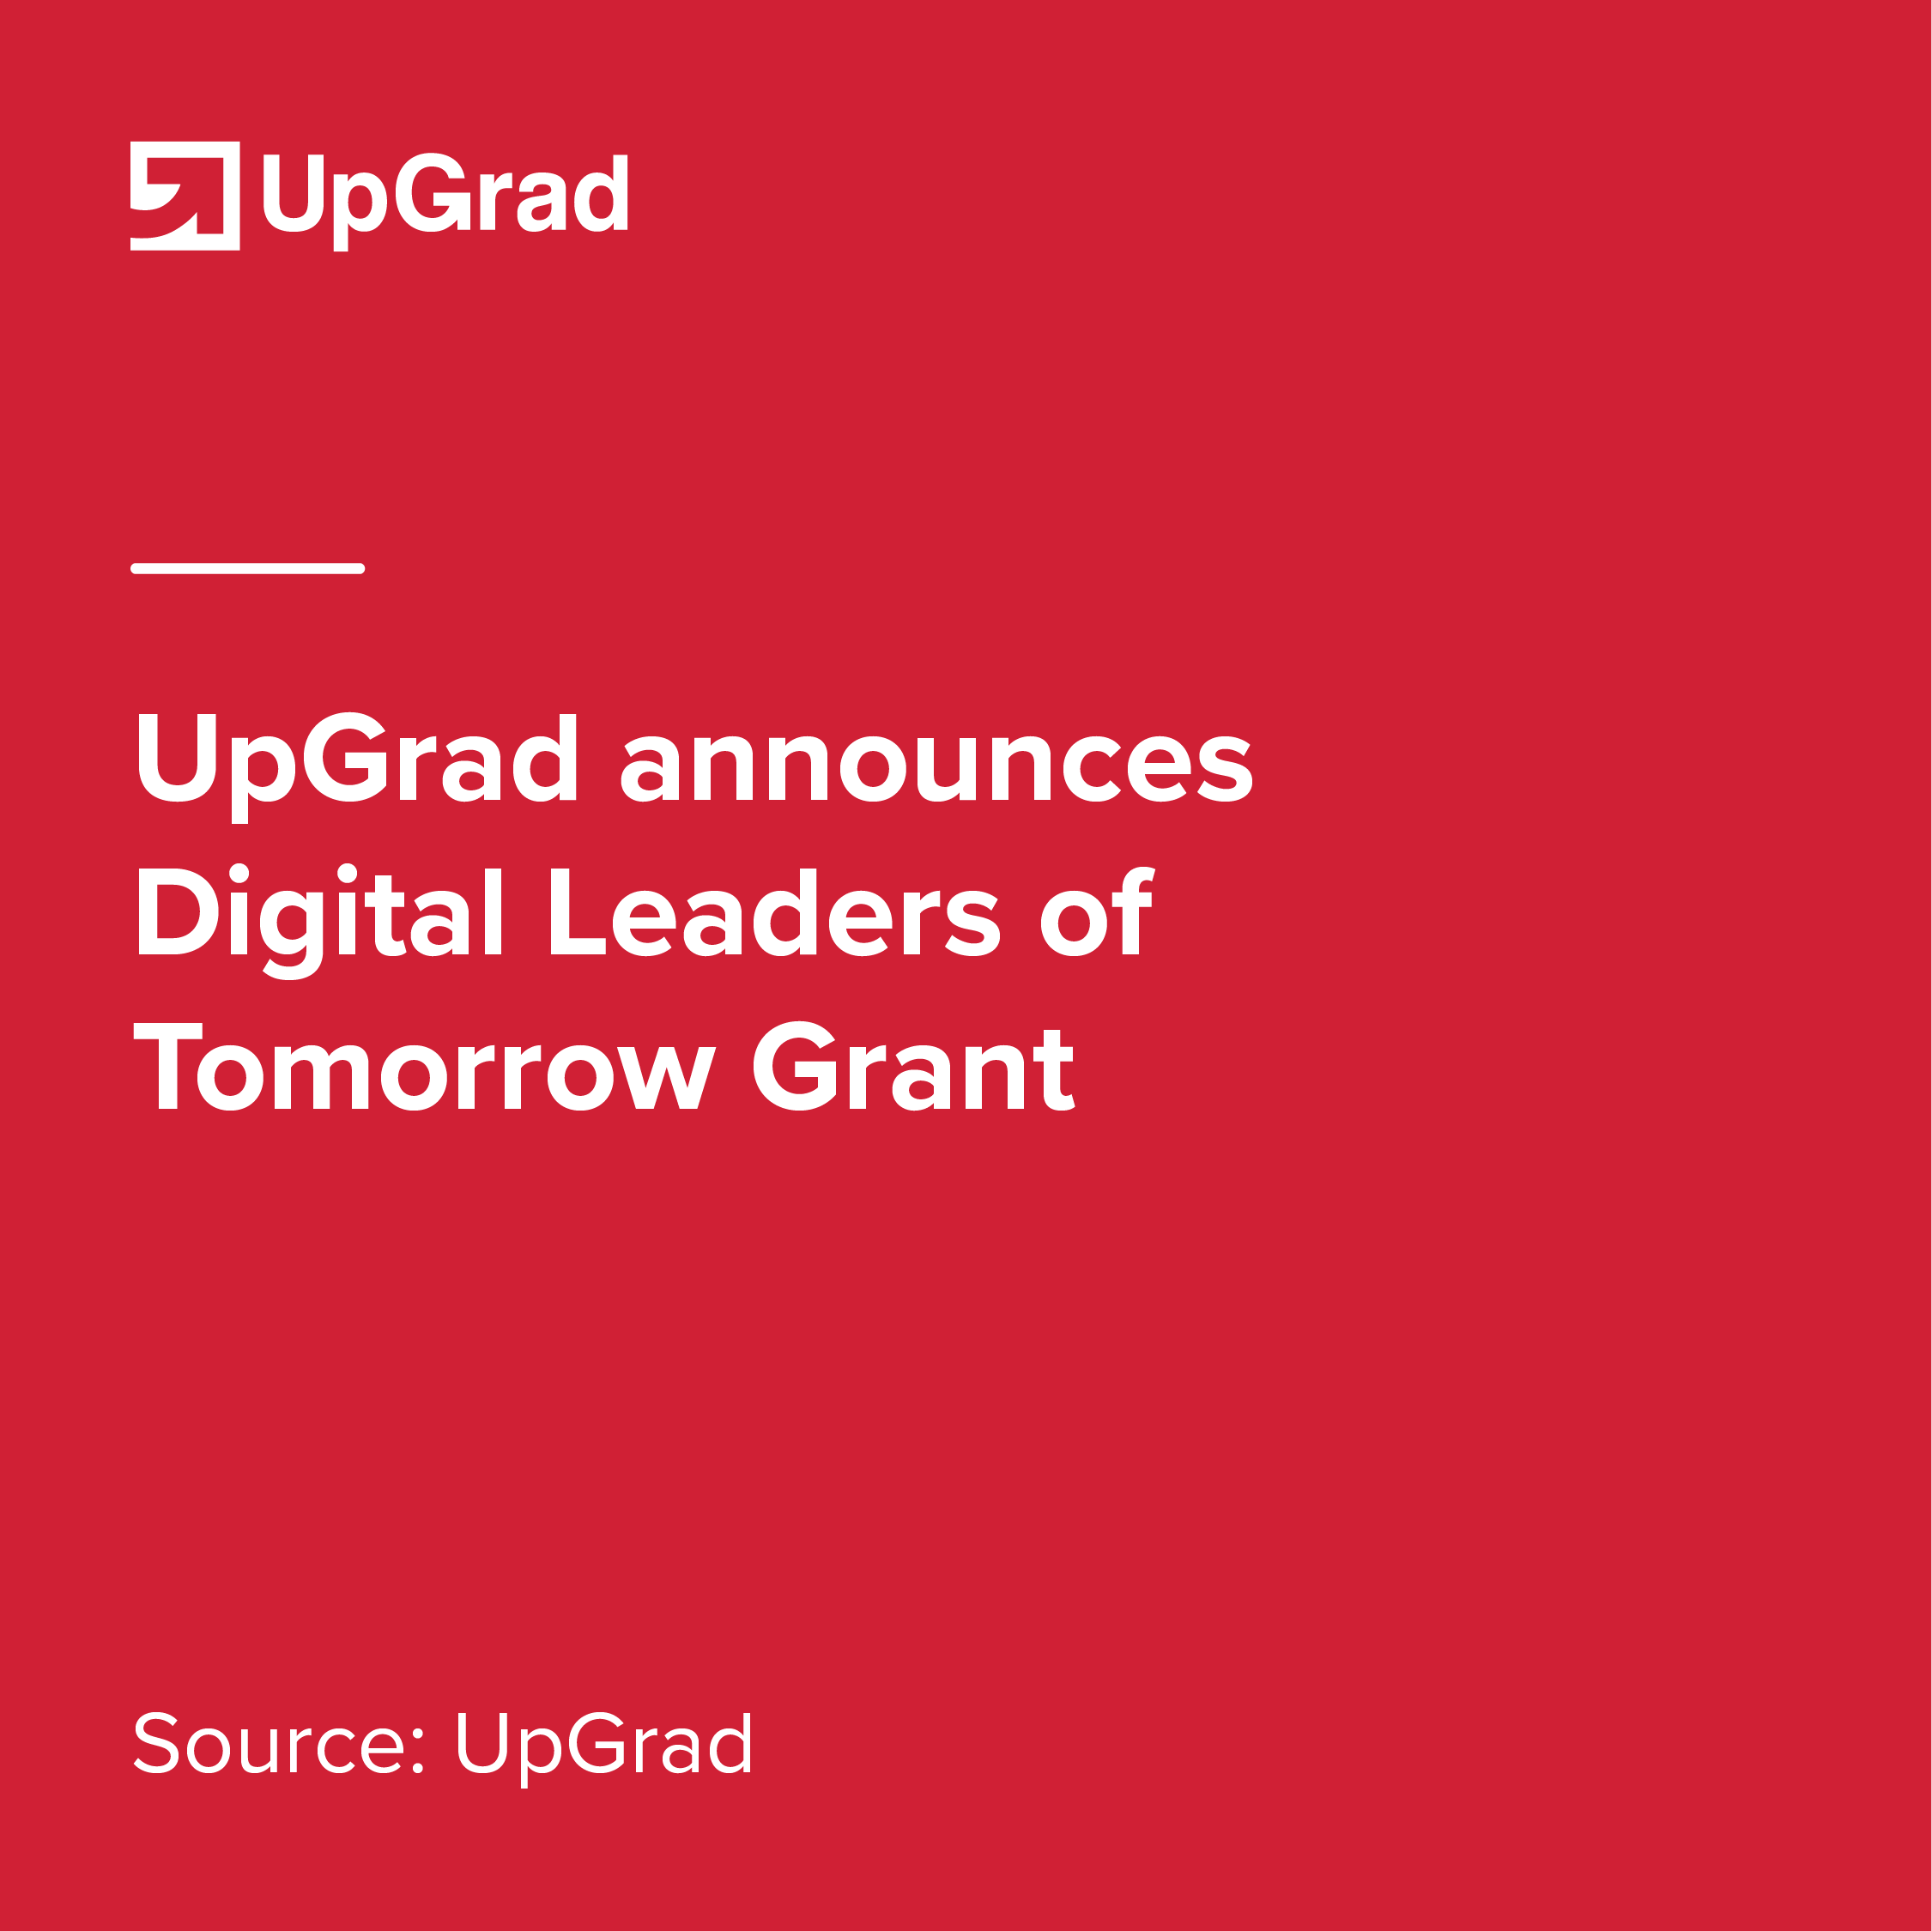 upgrad announces digital leaders of tomorrow grant